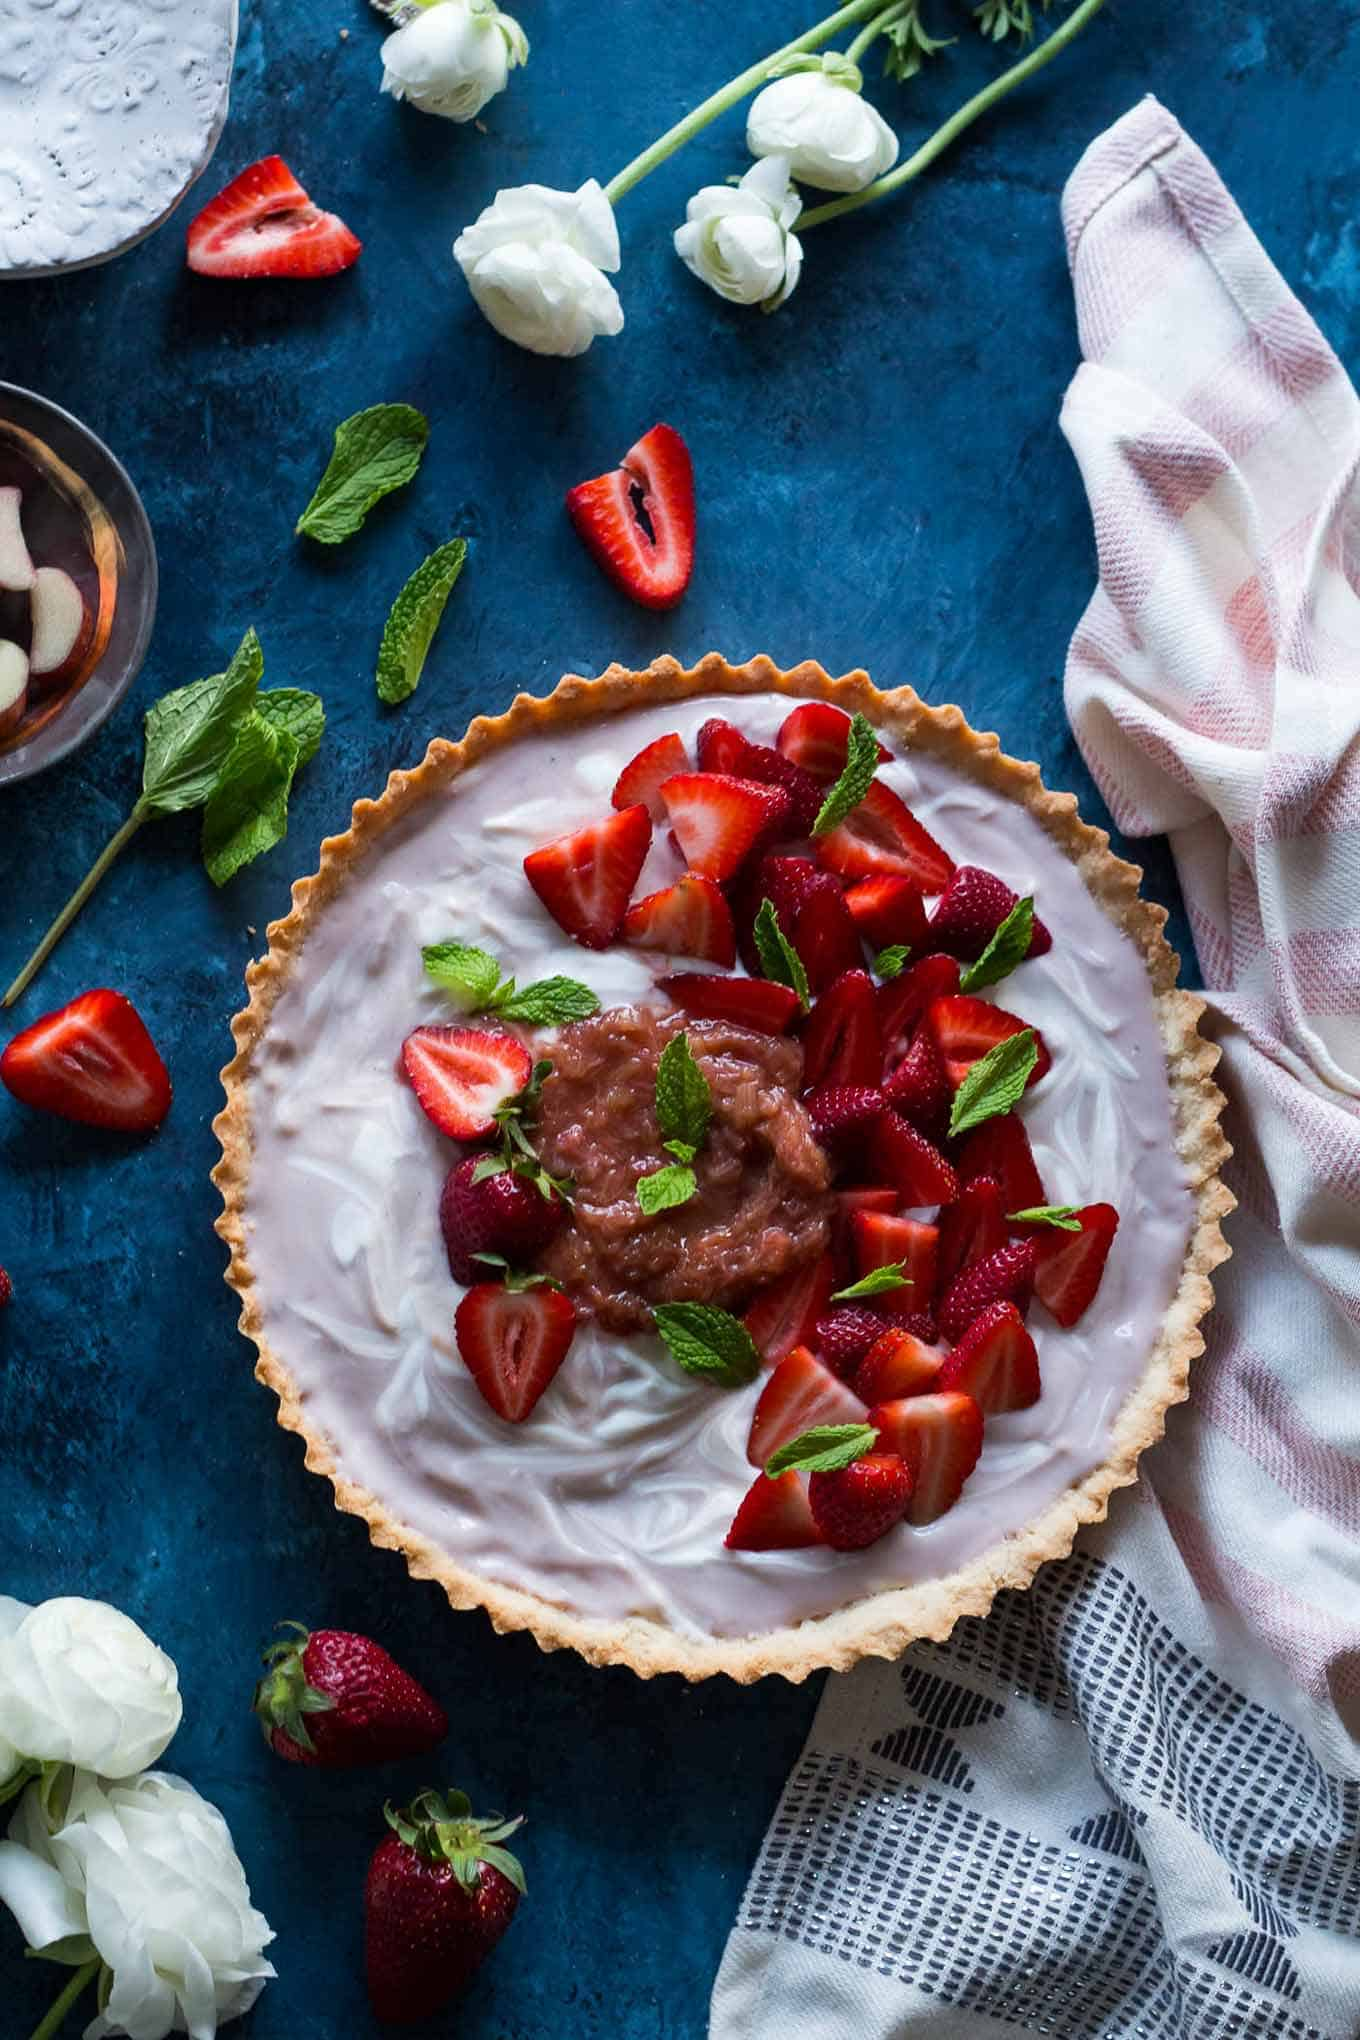 Strawberry vanilla tart with rhubarb compote + 15 Farmers market recipes to make in May! Delicious, vegetarian, (mostly) healthy spring/summer recipes made with fresh, seasonal produce from your local farmers market or CSA bin. Eat local! // Rhubarbarians